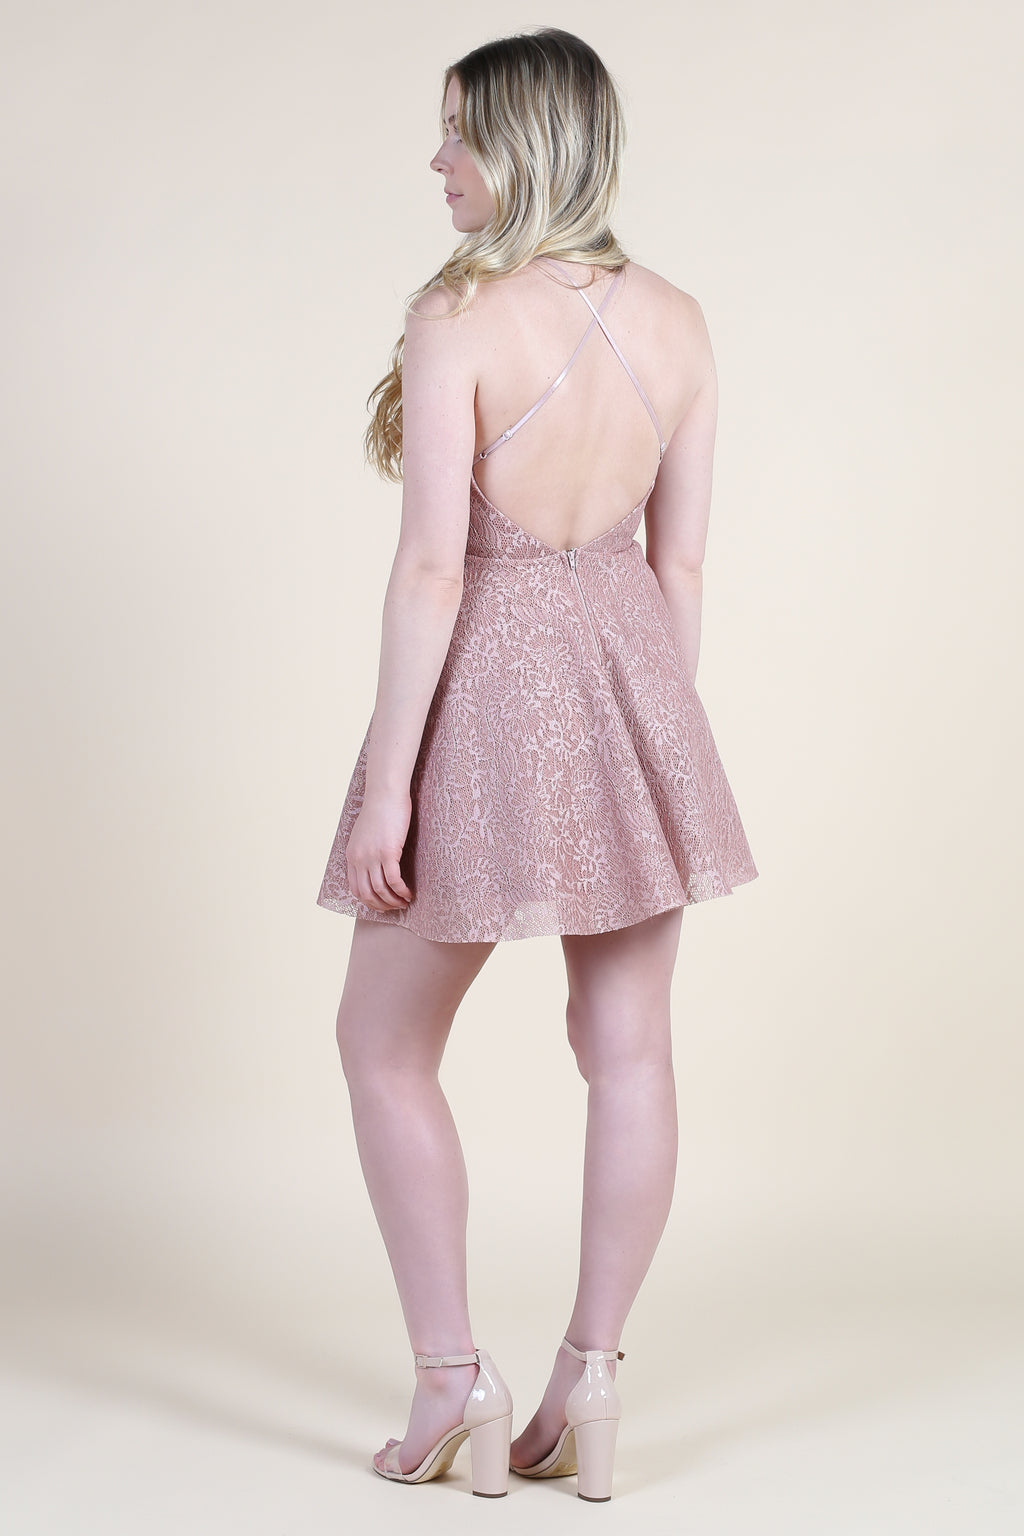 Dance All Night Lace Mini Dress - honey